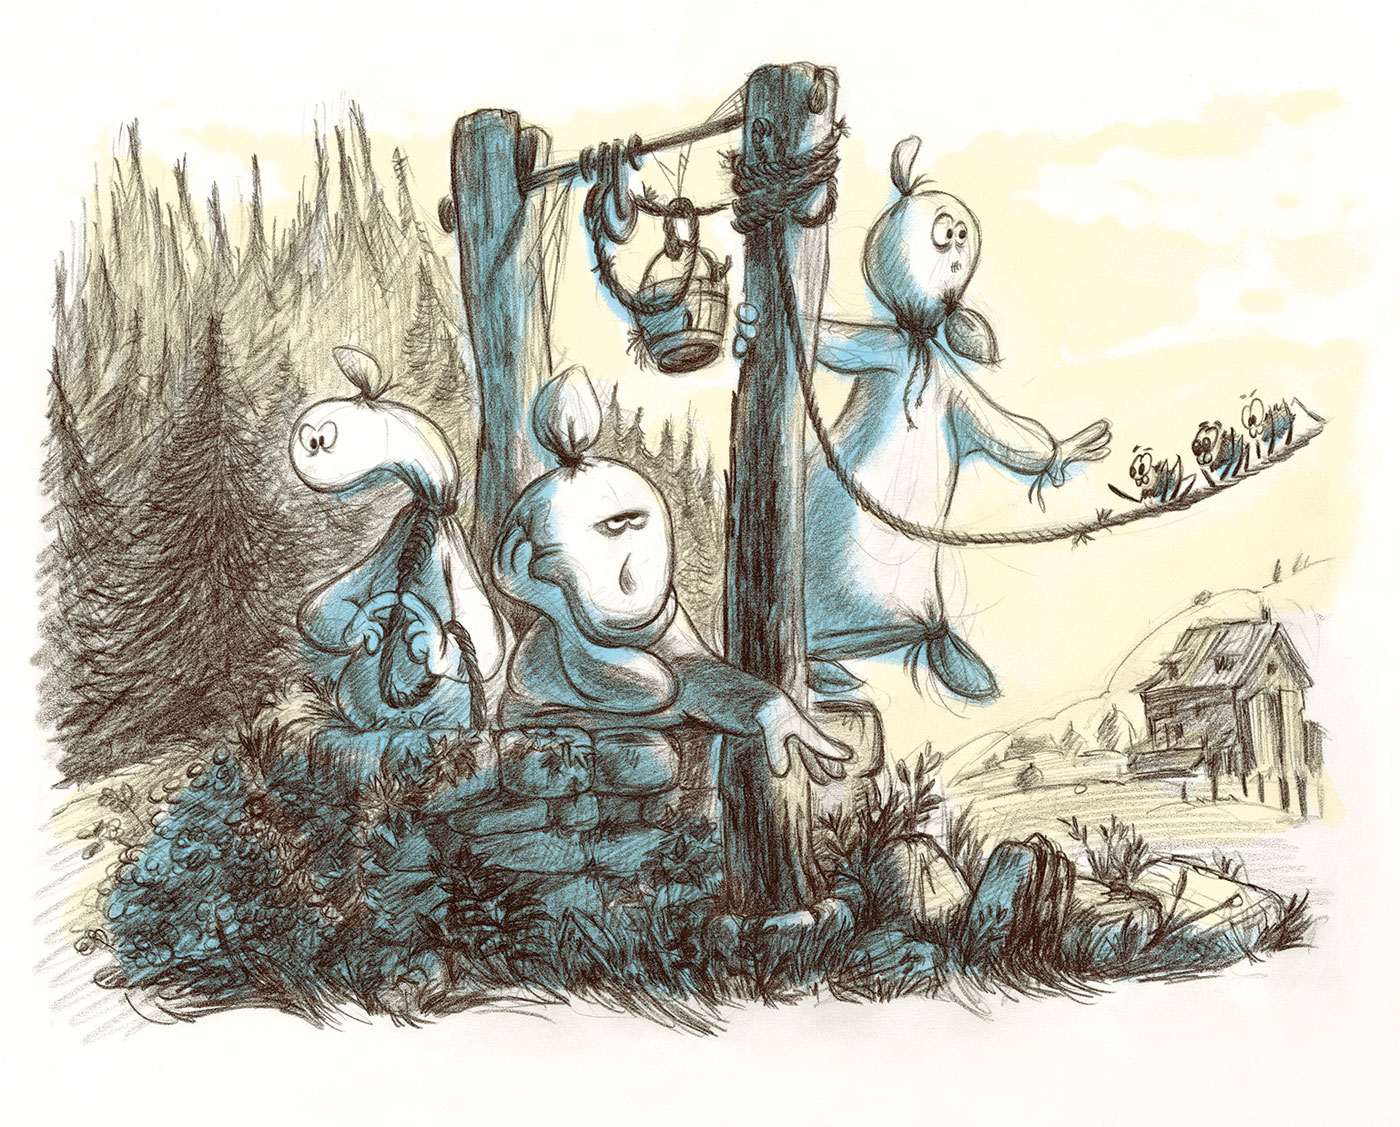 Spooky Ghosts - Book Illustration - At The Well